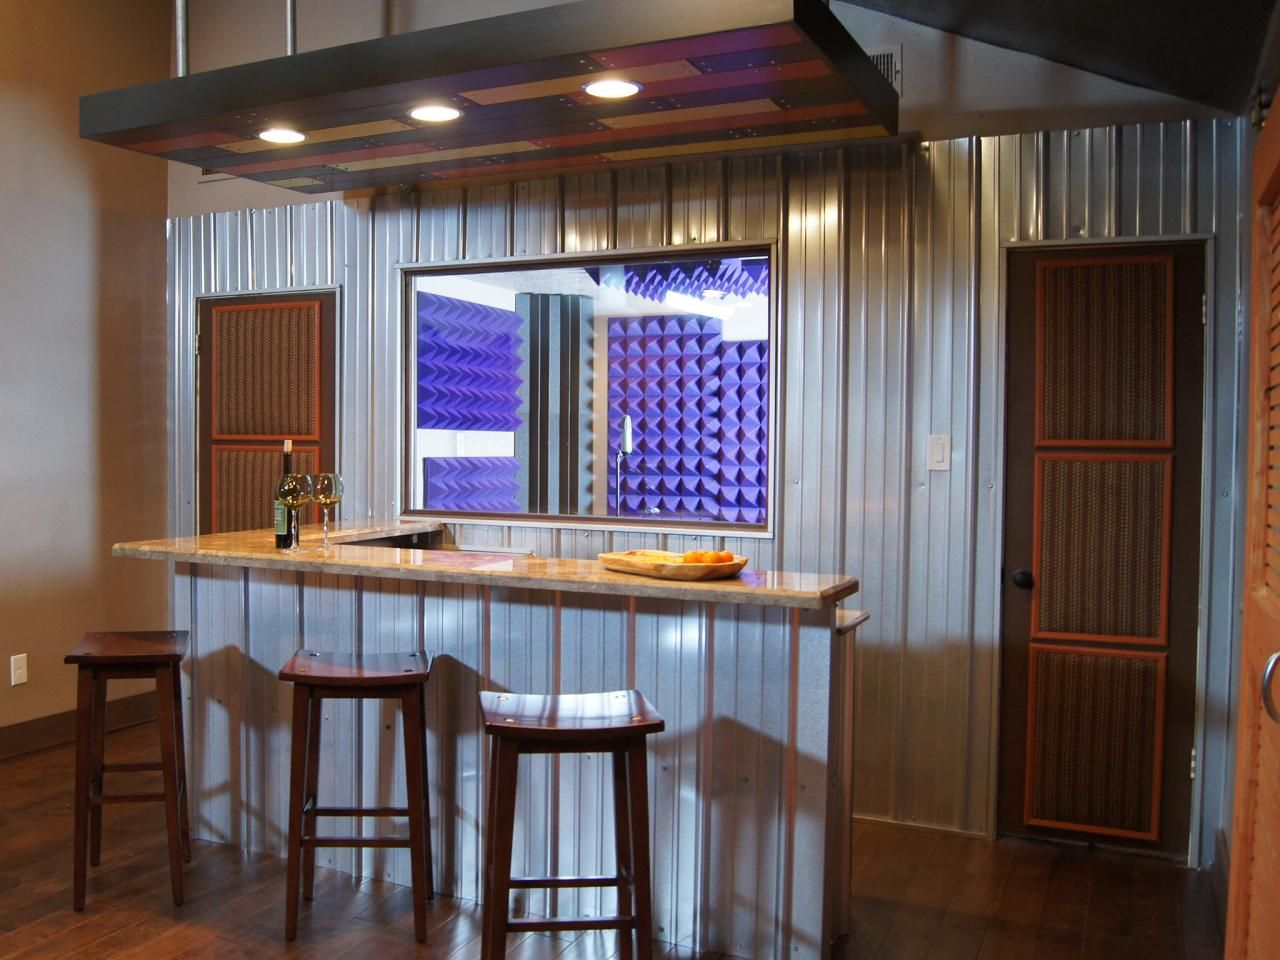 Bar Ideas Spice Up Your Basement Bar 17 Ideas For A Beautiful Bar Space